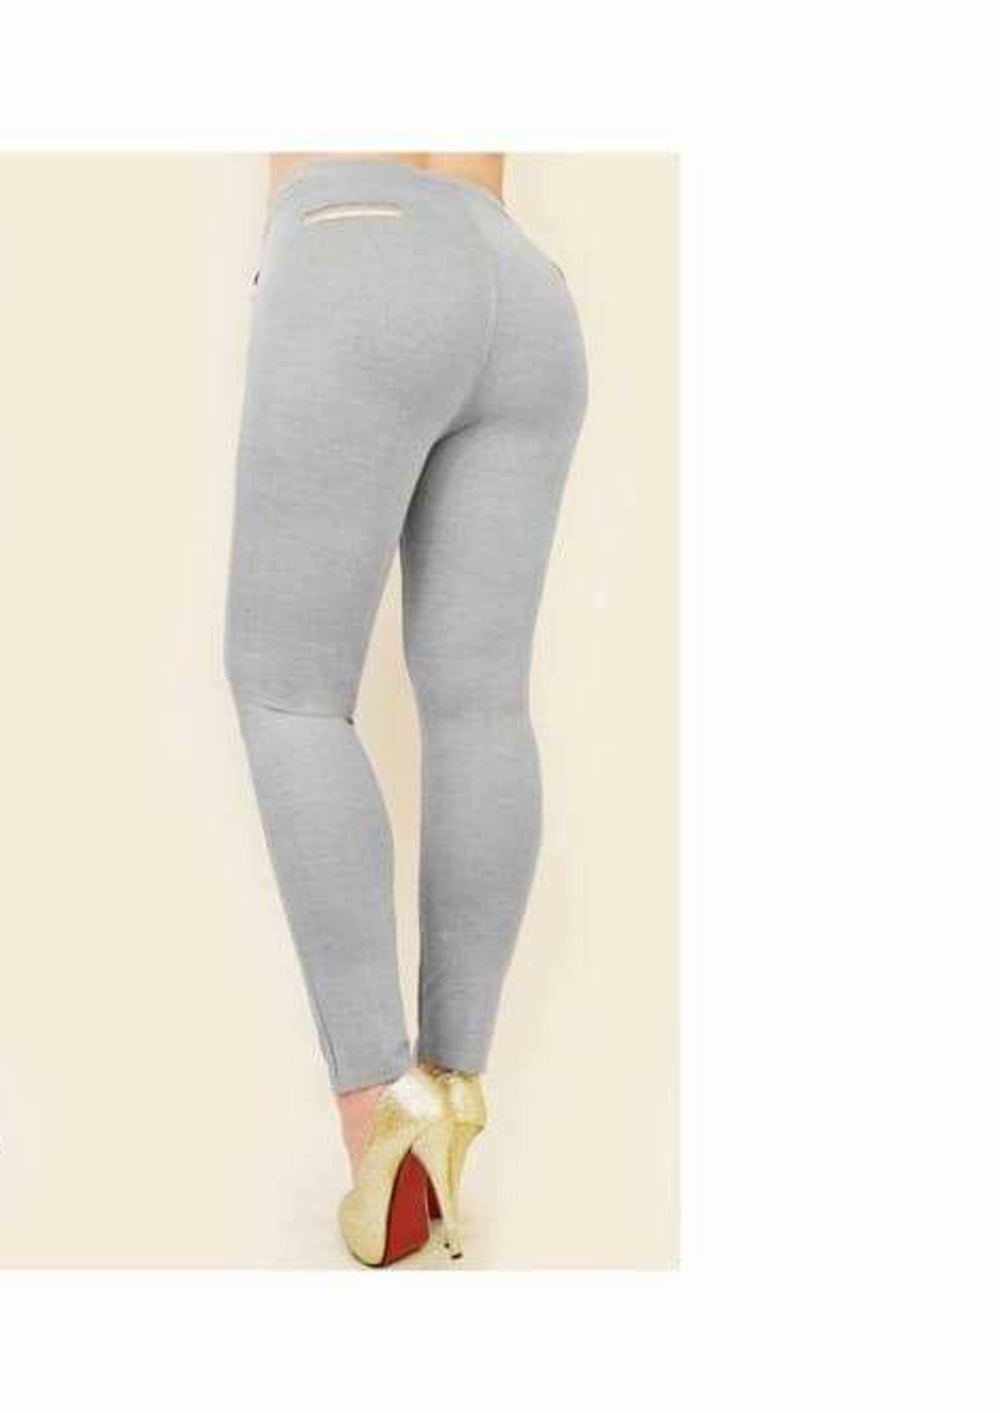 Plus Size High Waisted Leggings With Pockets - 2XL/3XL / Grey - Trousers & Shorts 2XL 3XL 4XL 5XL 6XL